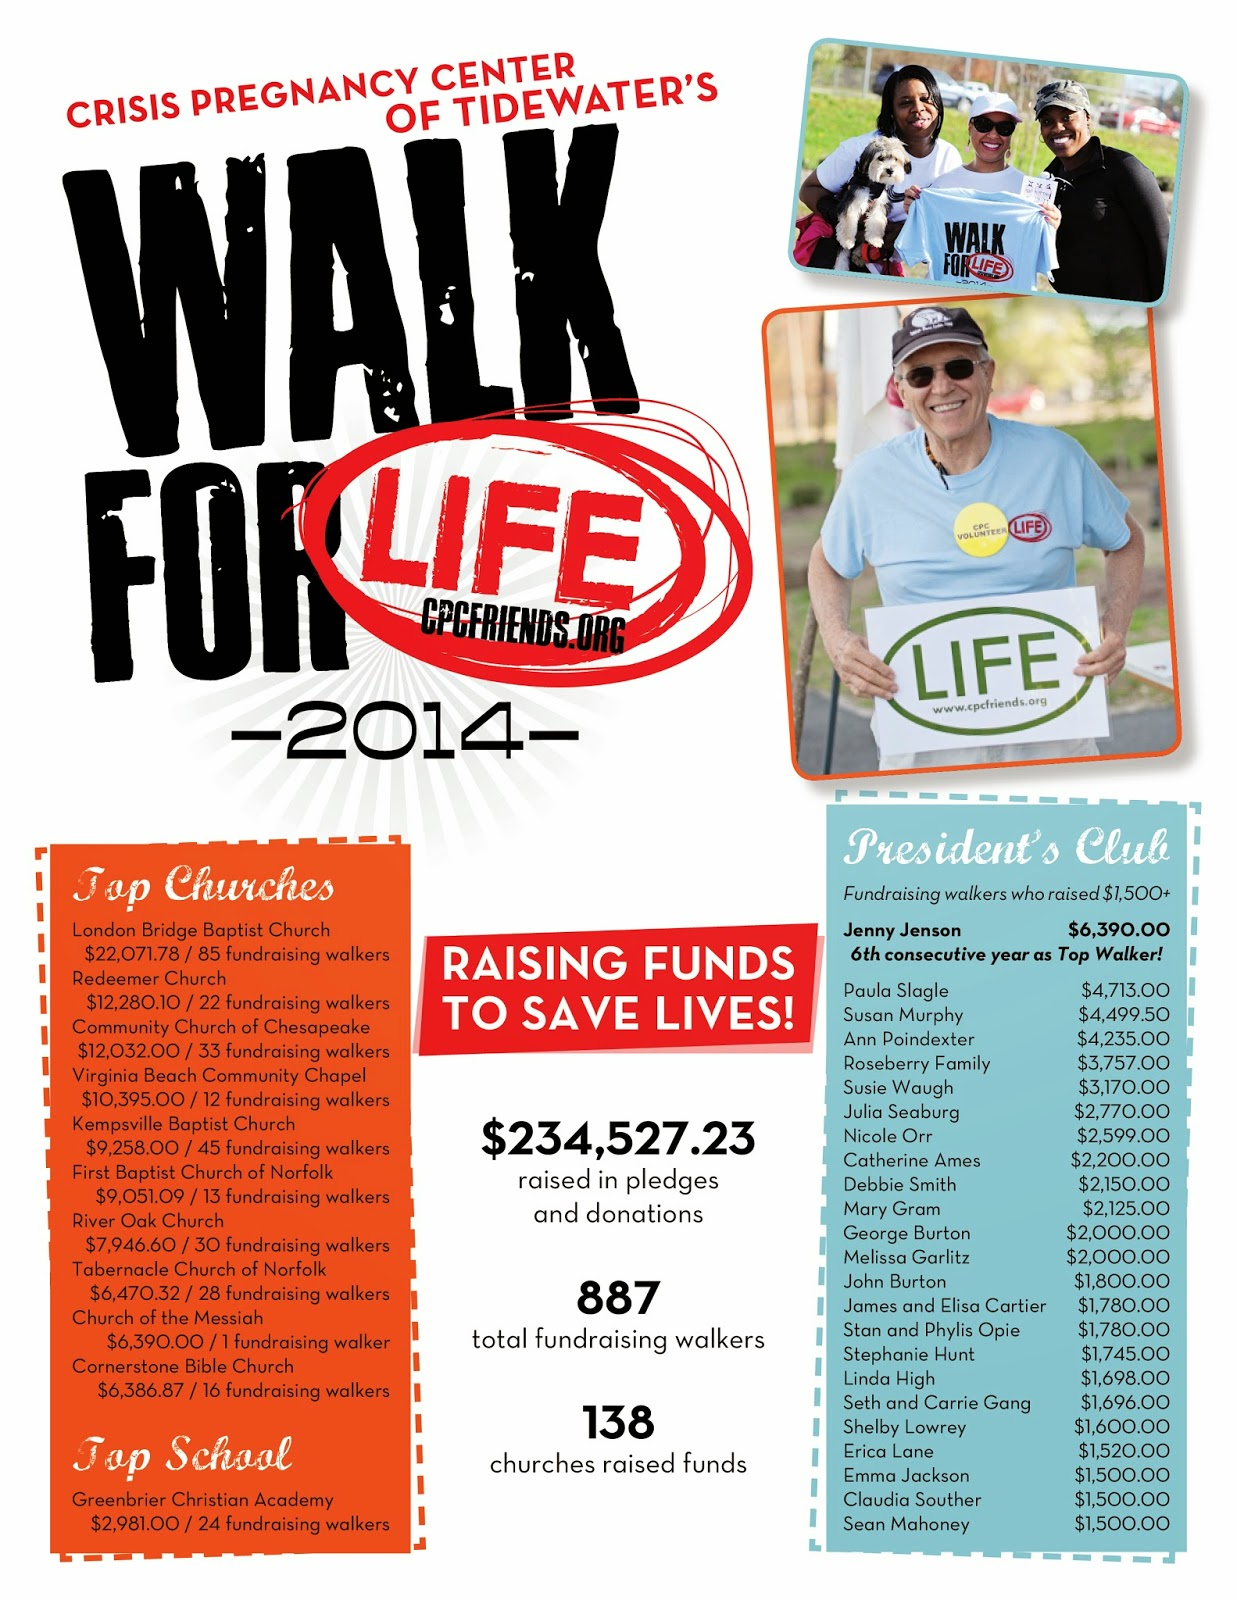 See CPC's Walk for Life 2014 Results at www.cpcfriends.org/results